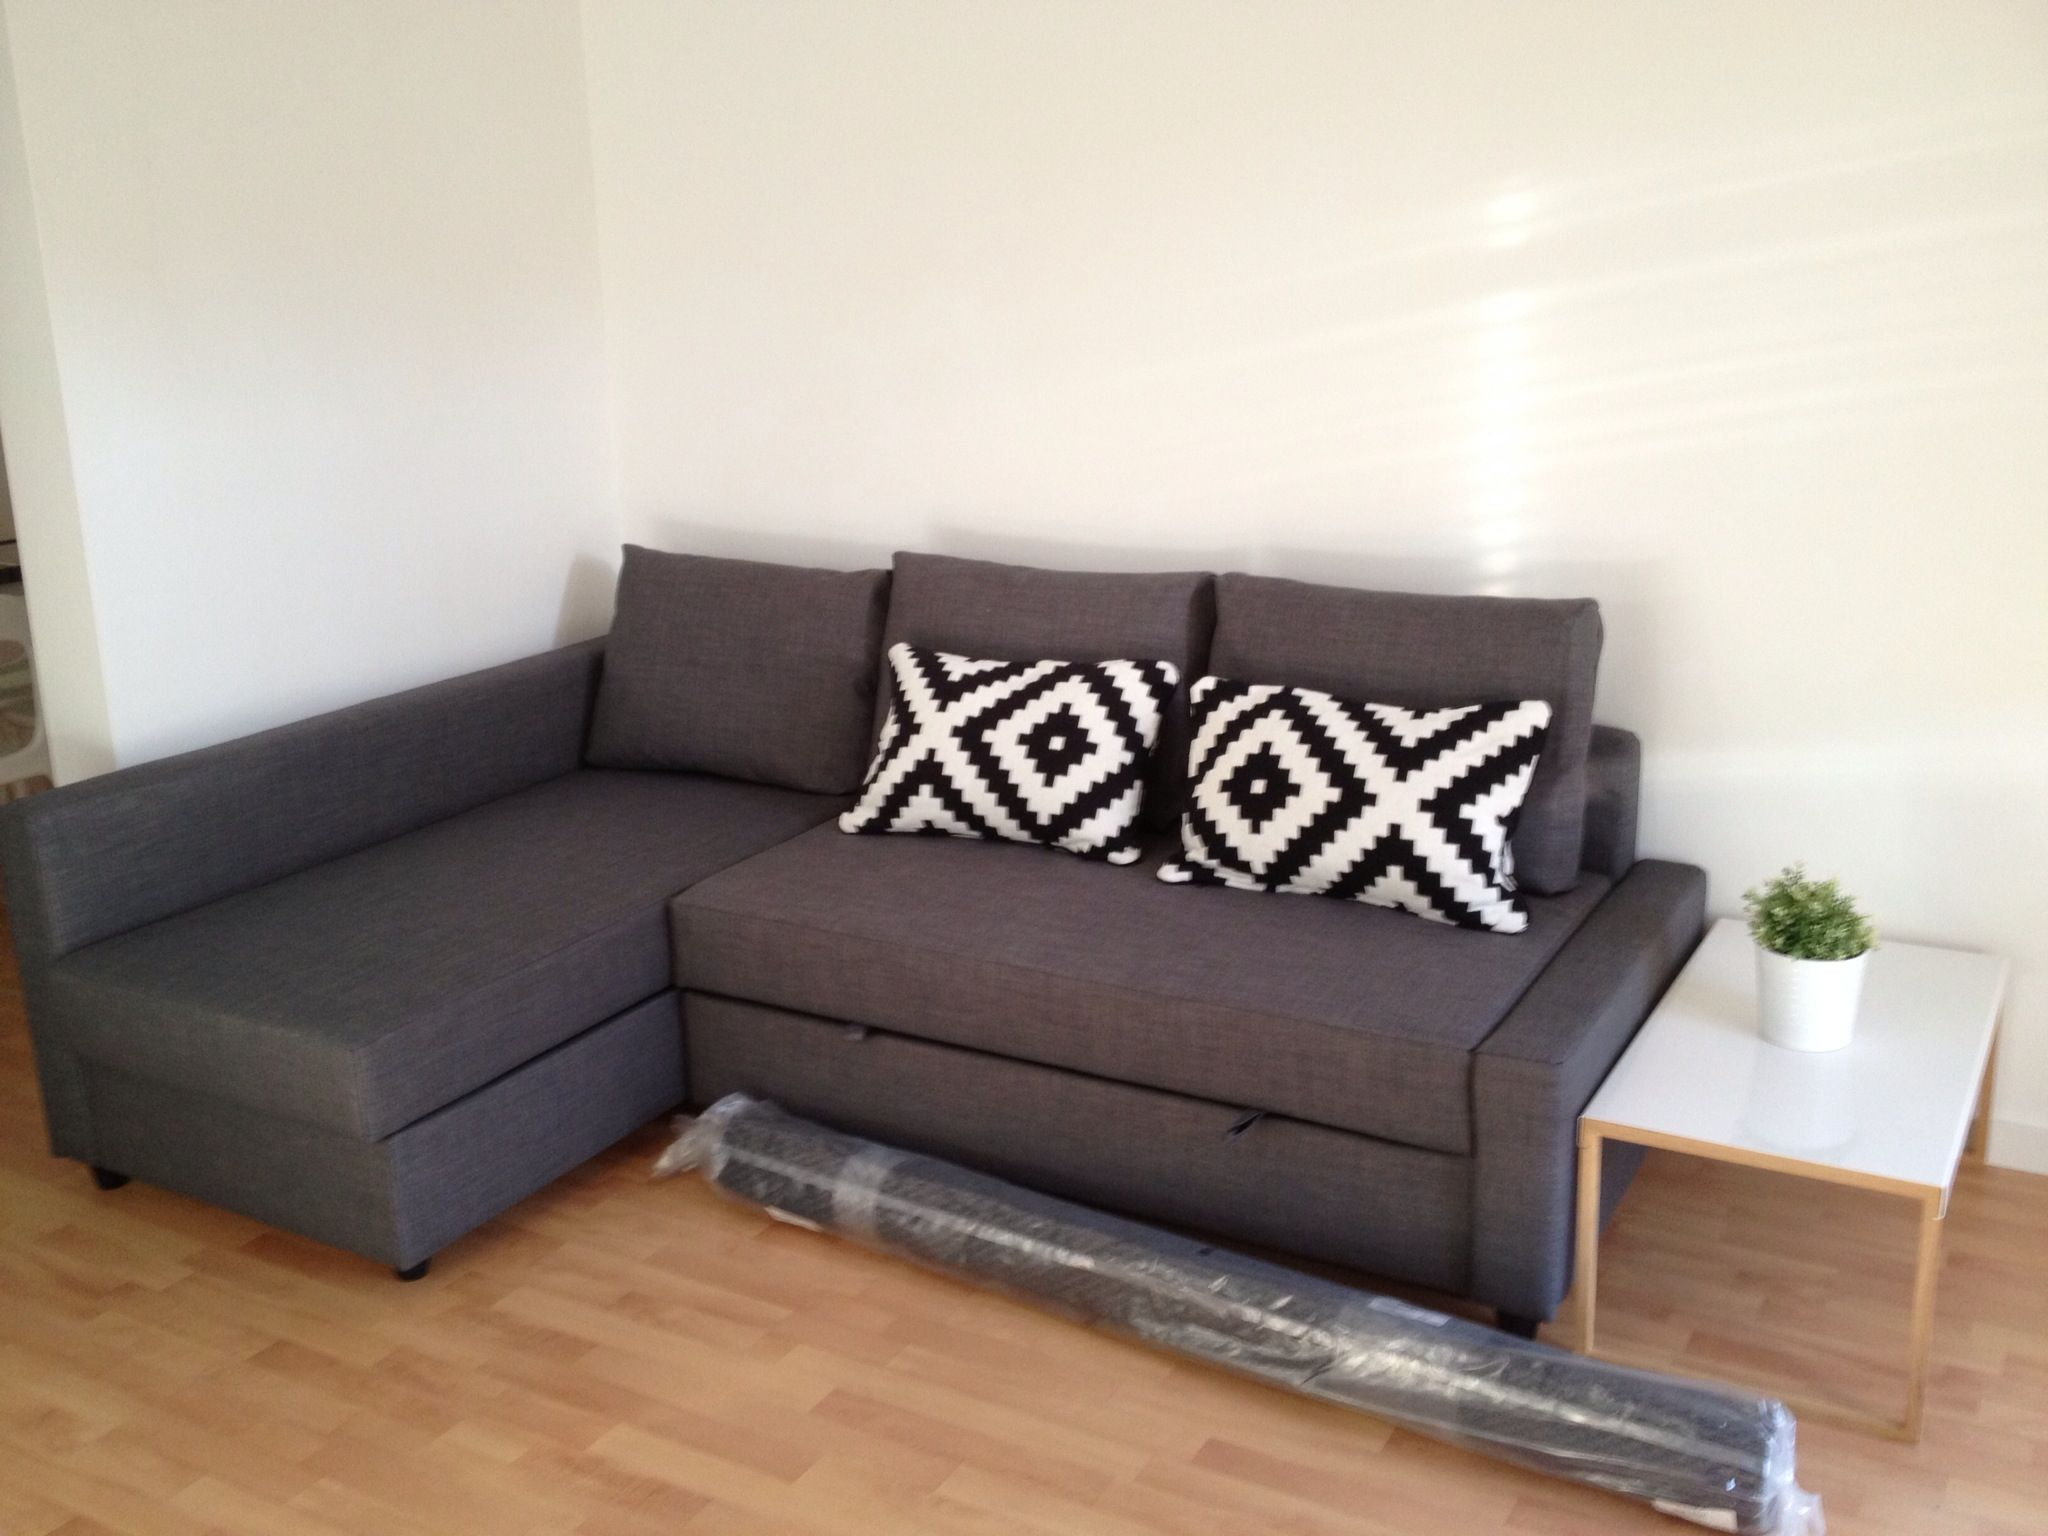 Calle provenza work in progress sofa cama friheten de - Sofa cama infantil ikea ...